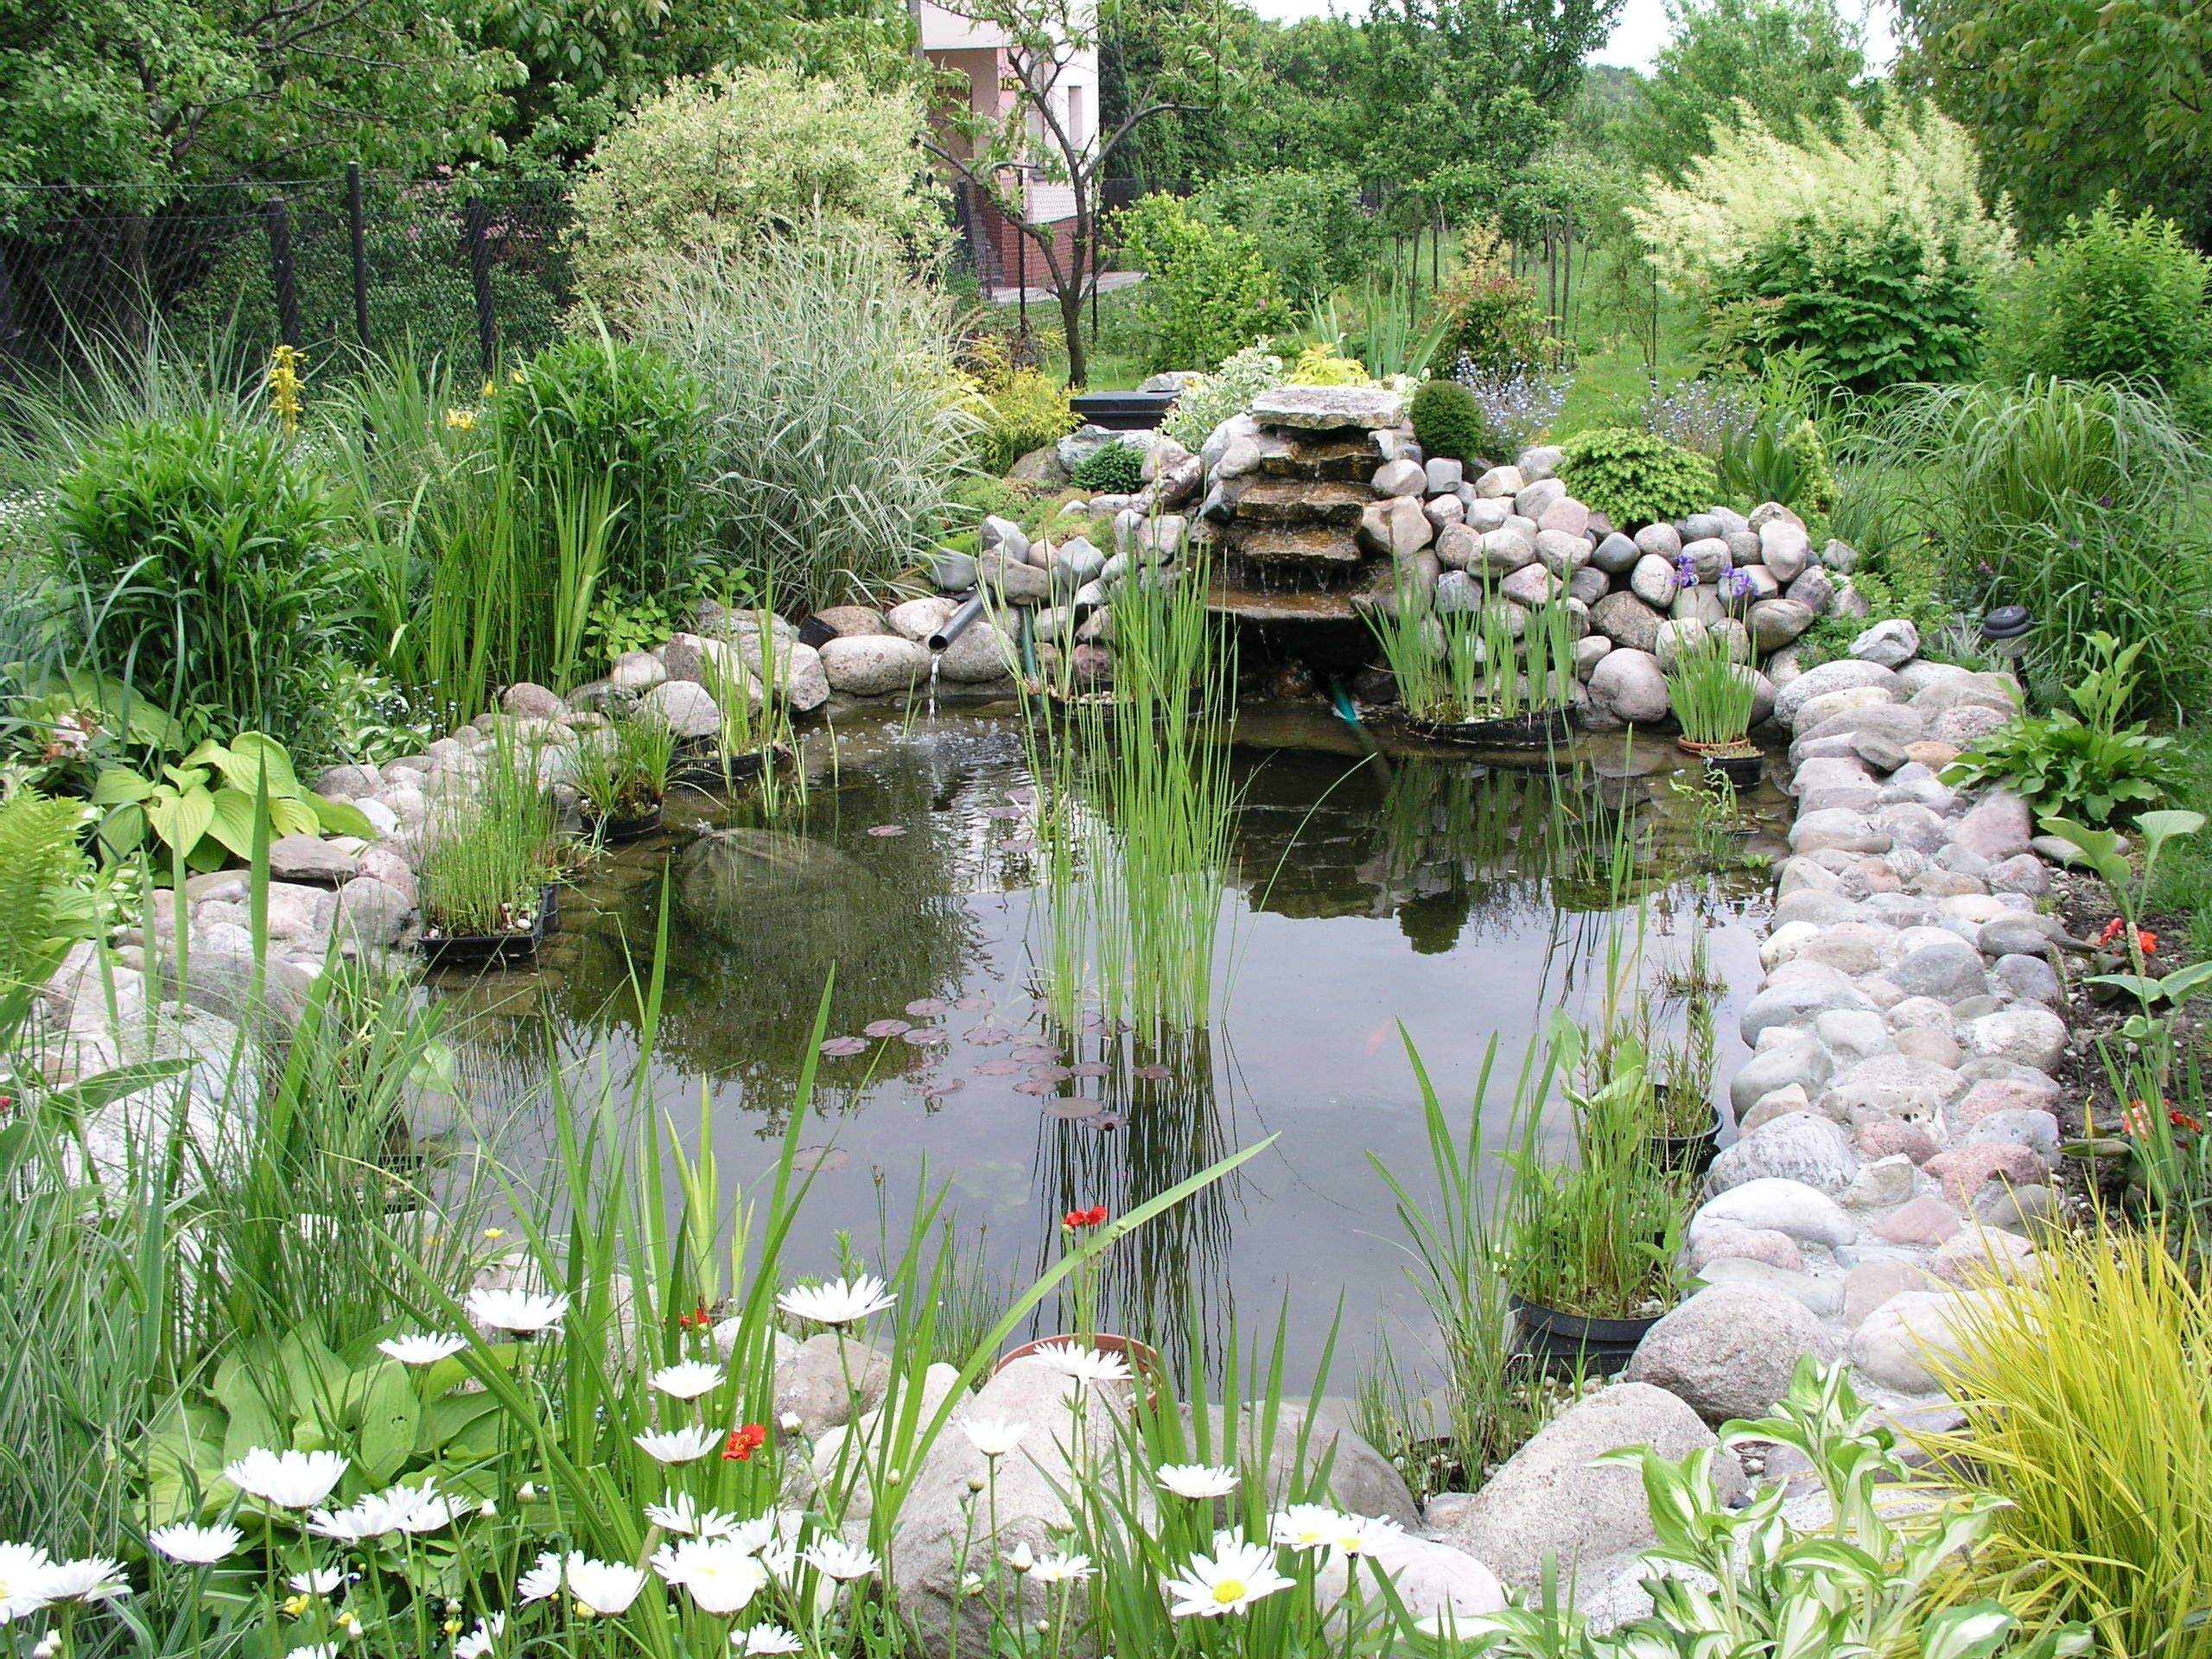 How To Build Your Own Garden Pond In 9 Simple Steps , Glenns